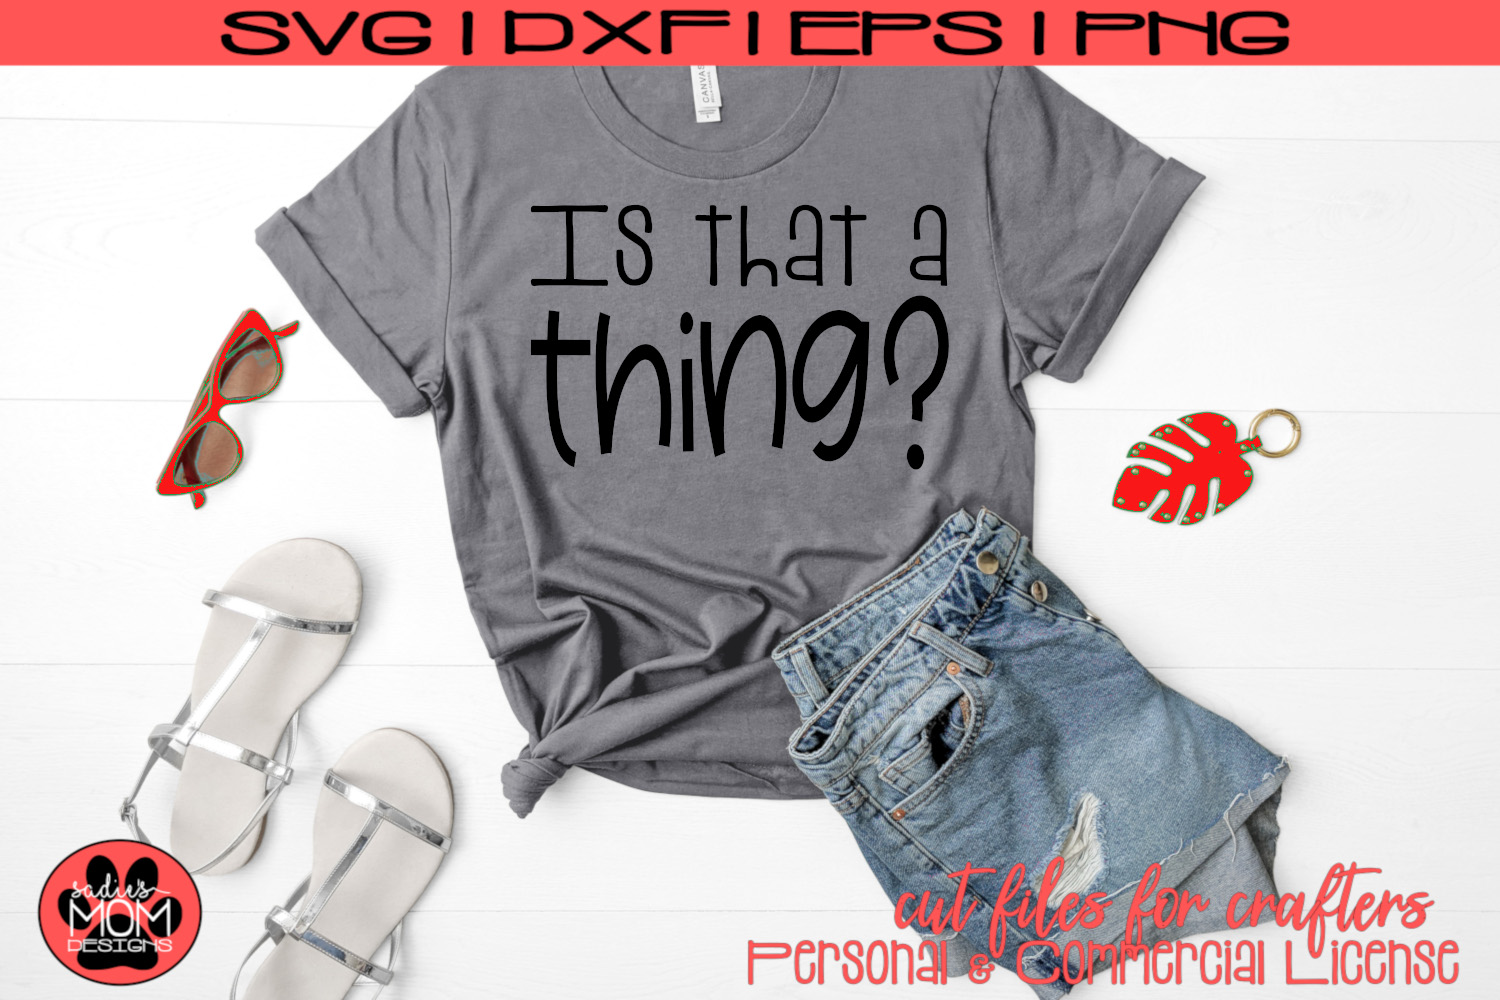 Is that a thing? | Whimsical Urban Slang | SVG Cut File example image 2